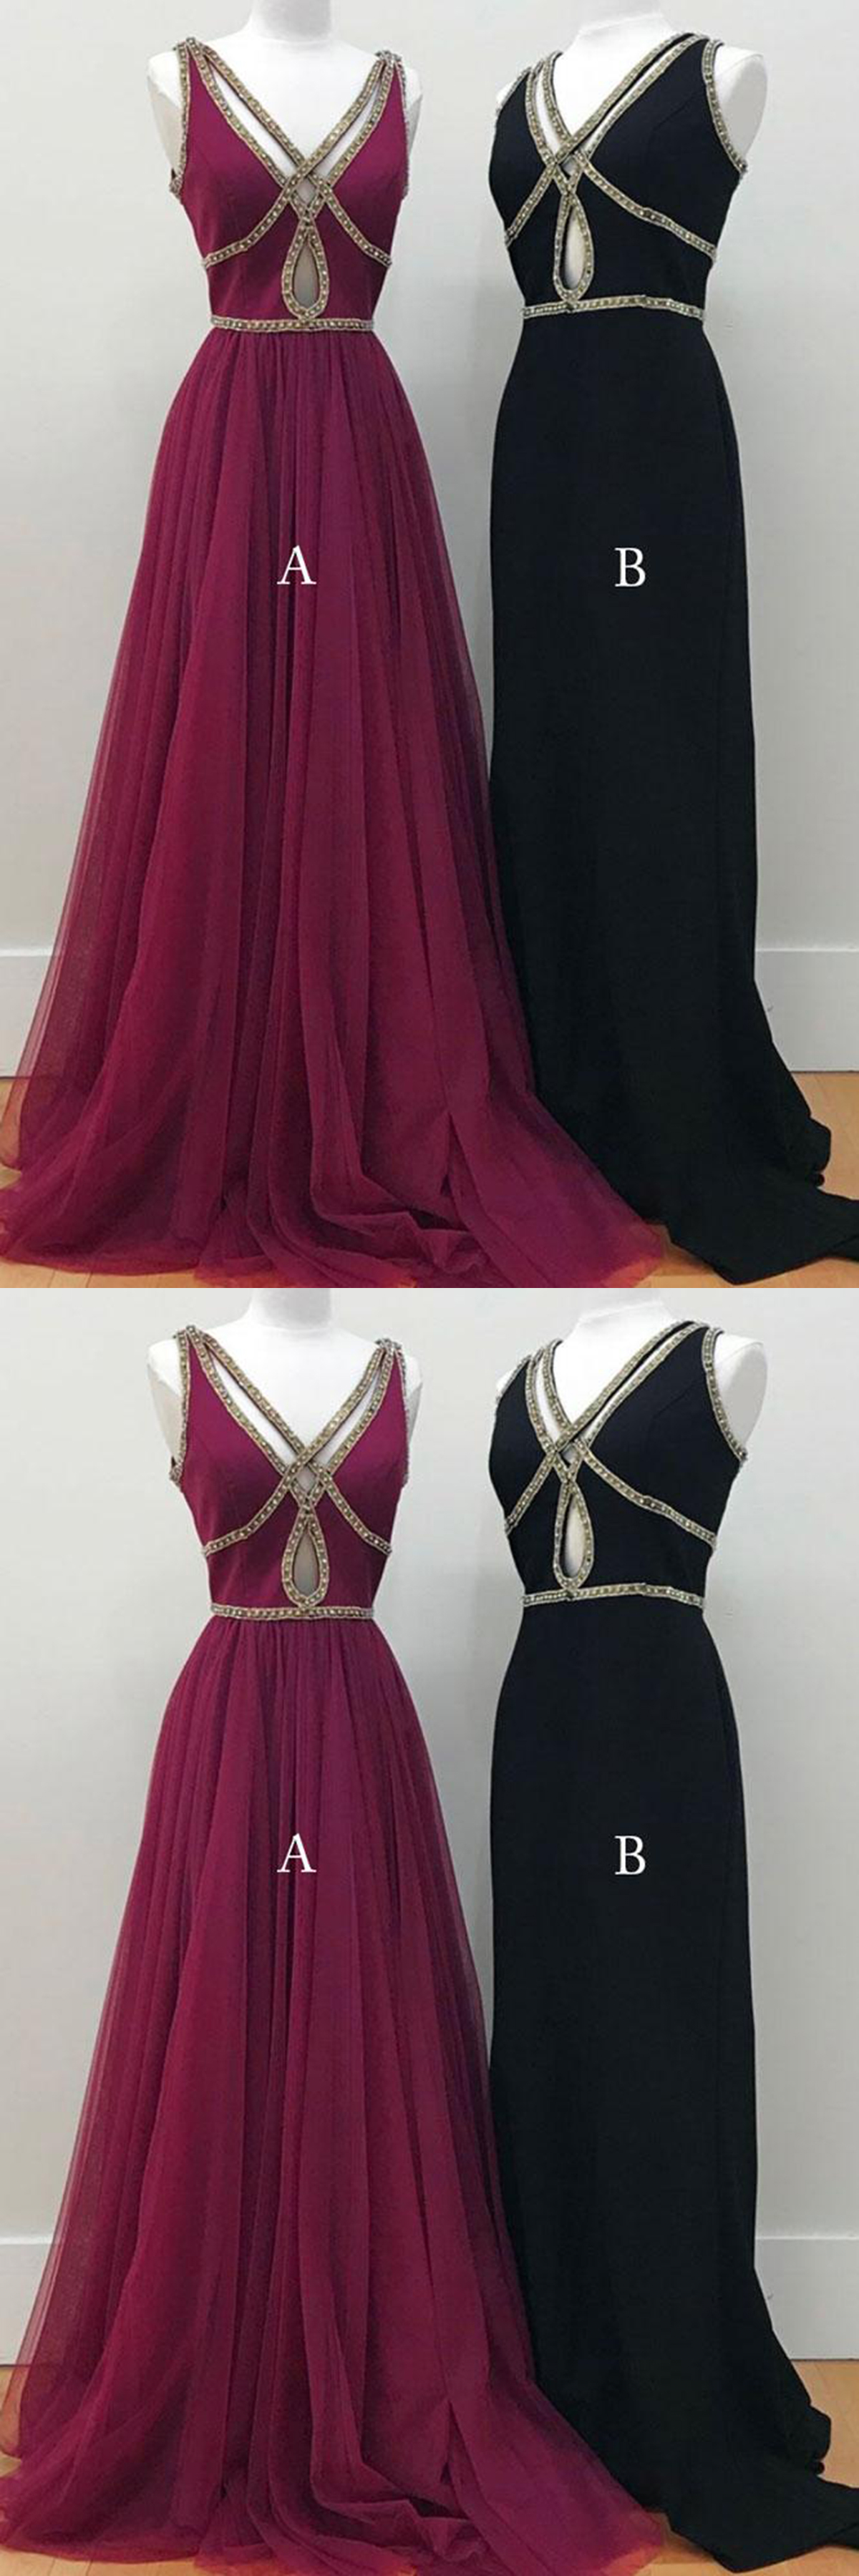 Simple hollow out long v neck evening dresses long beaded tulle